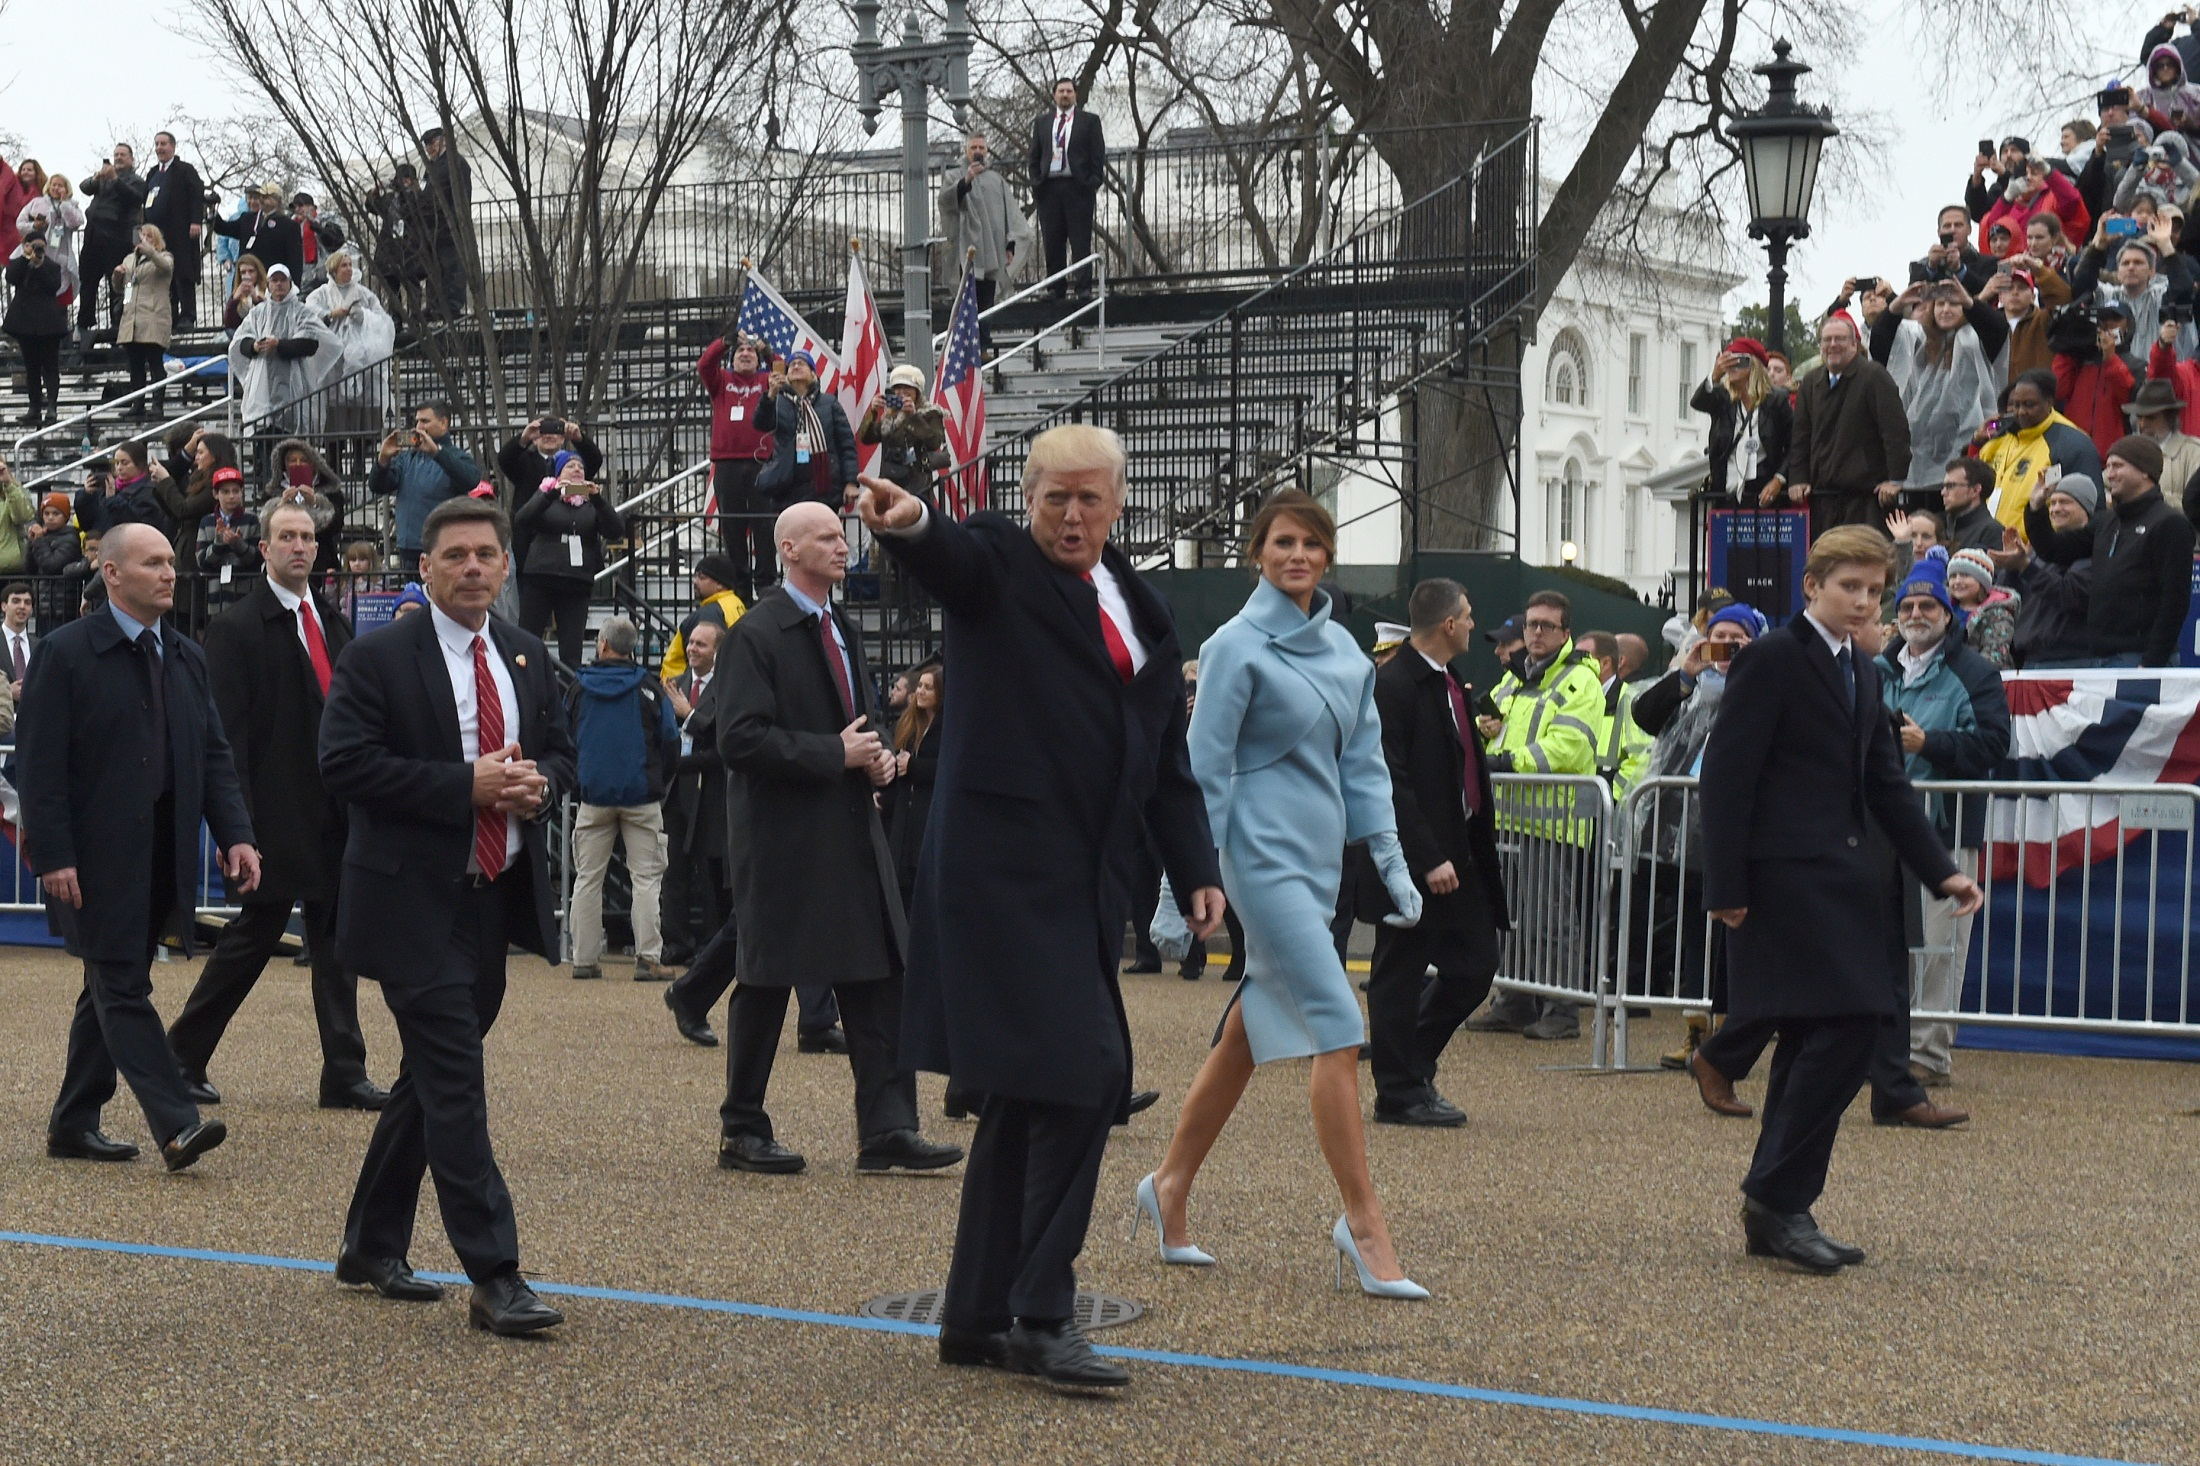 US President Donald Trump walks his son Barron (R) and wife Melania surrounded by Secret Service officers at the White House as the presidential inaugural parade winds through the nation's capital on January 20, 2017 in Washington, DC. / AFP PHOTO / Timothy A. CLARY